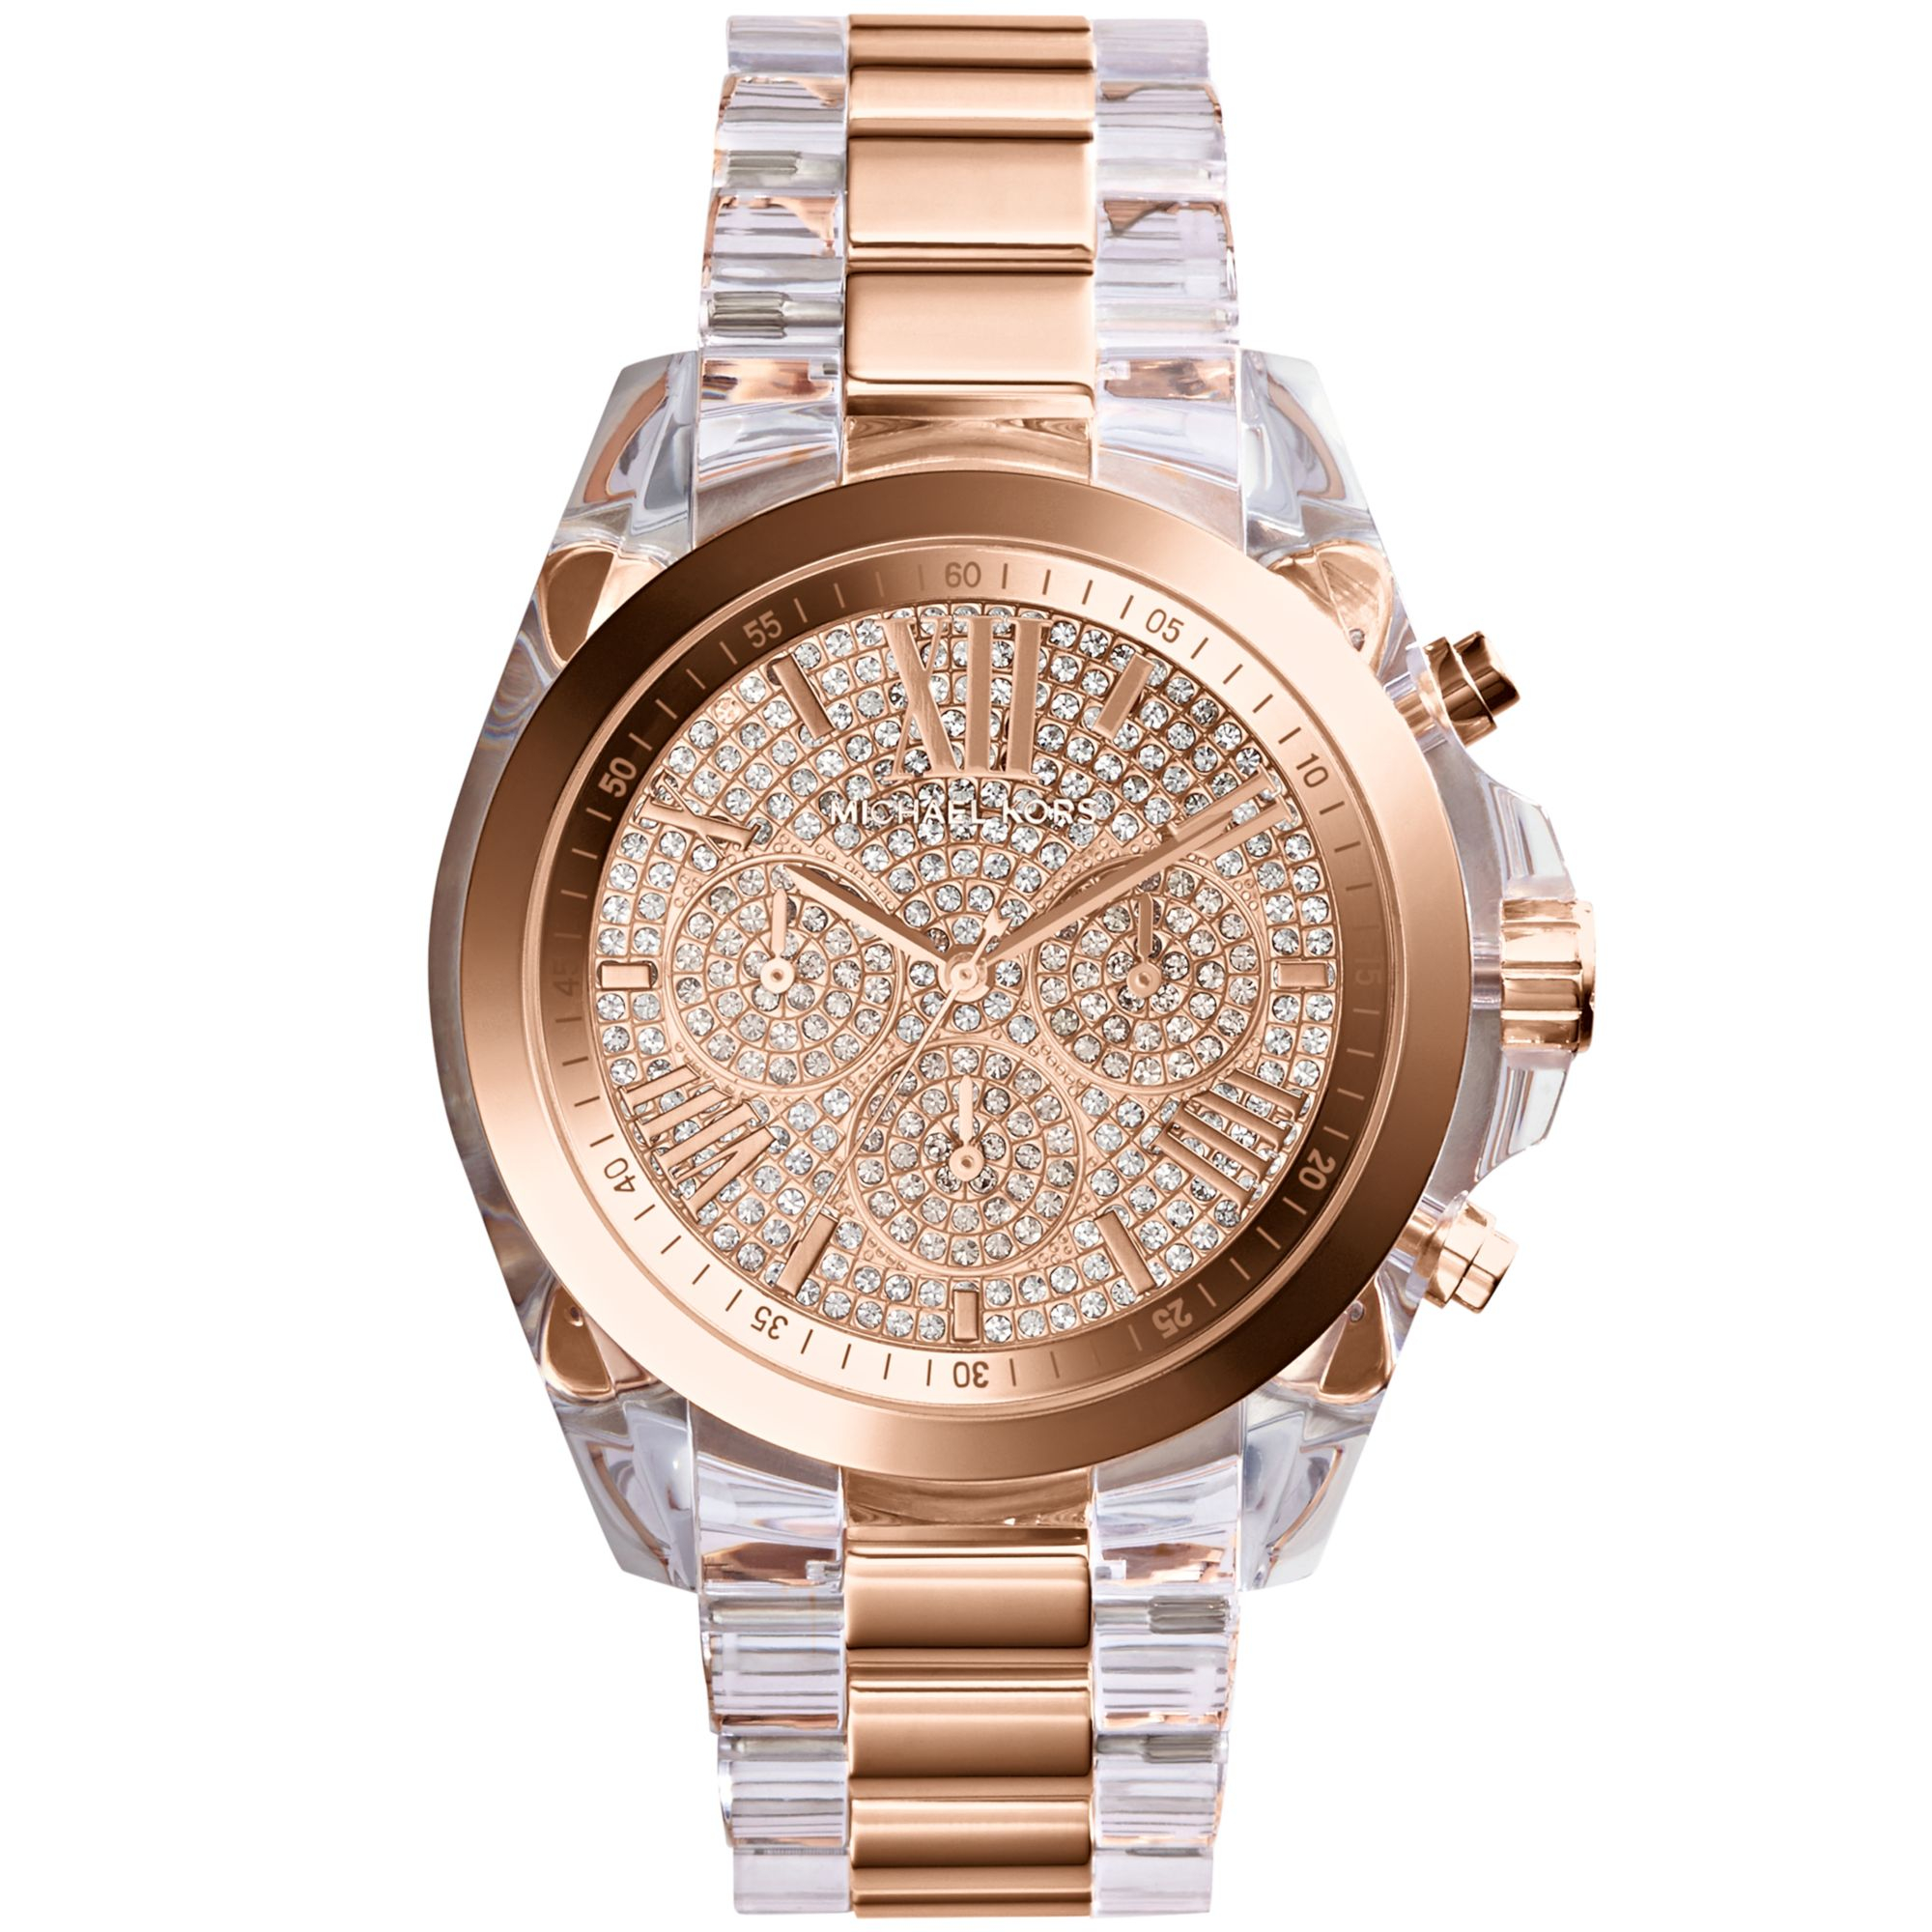 8a8f482d7716 Lyst - Michael Kors Womens Chronograph Bradshaw Clear and Rose ...